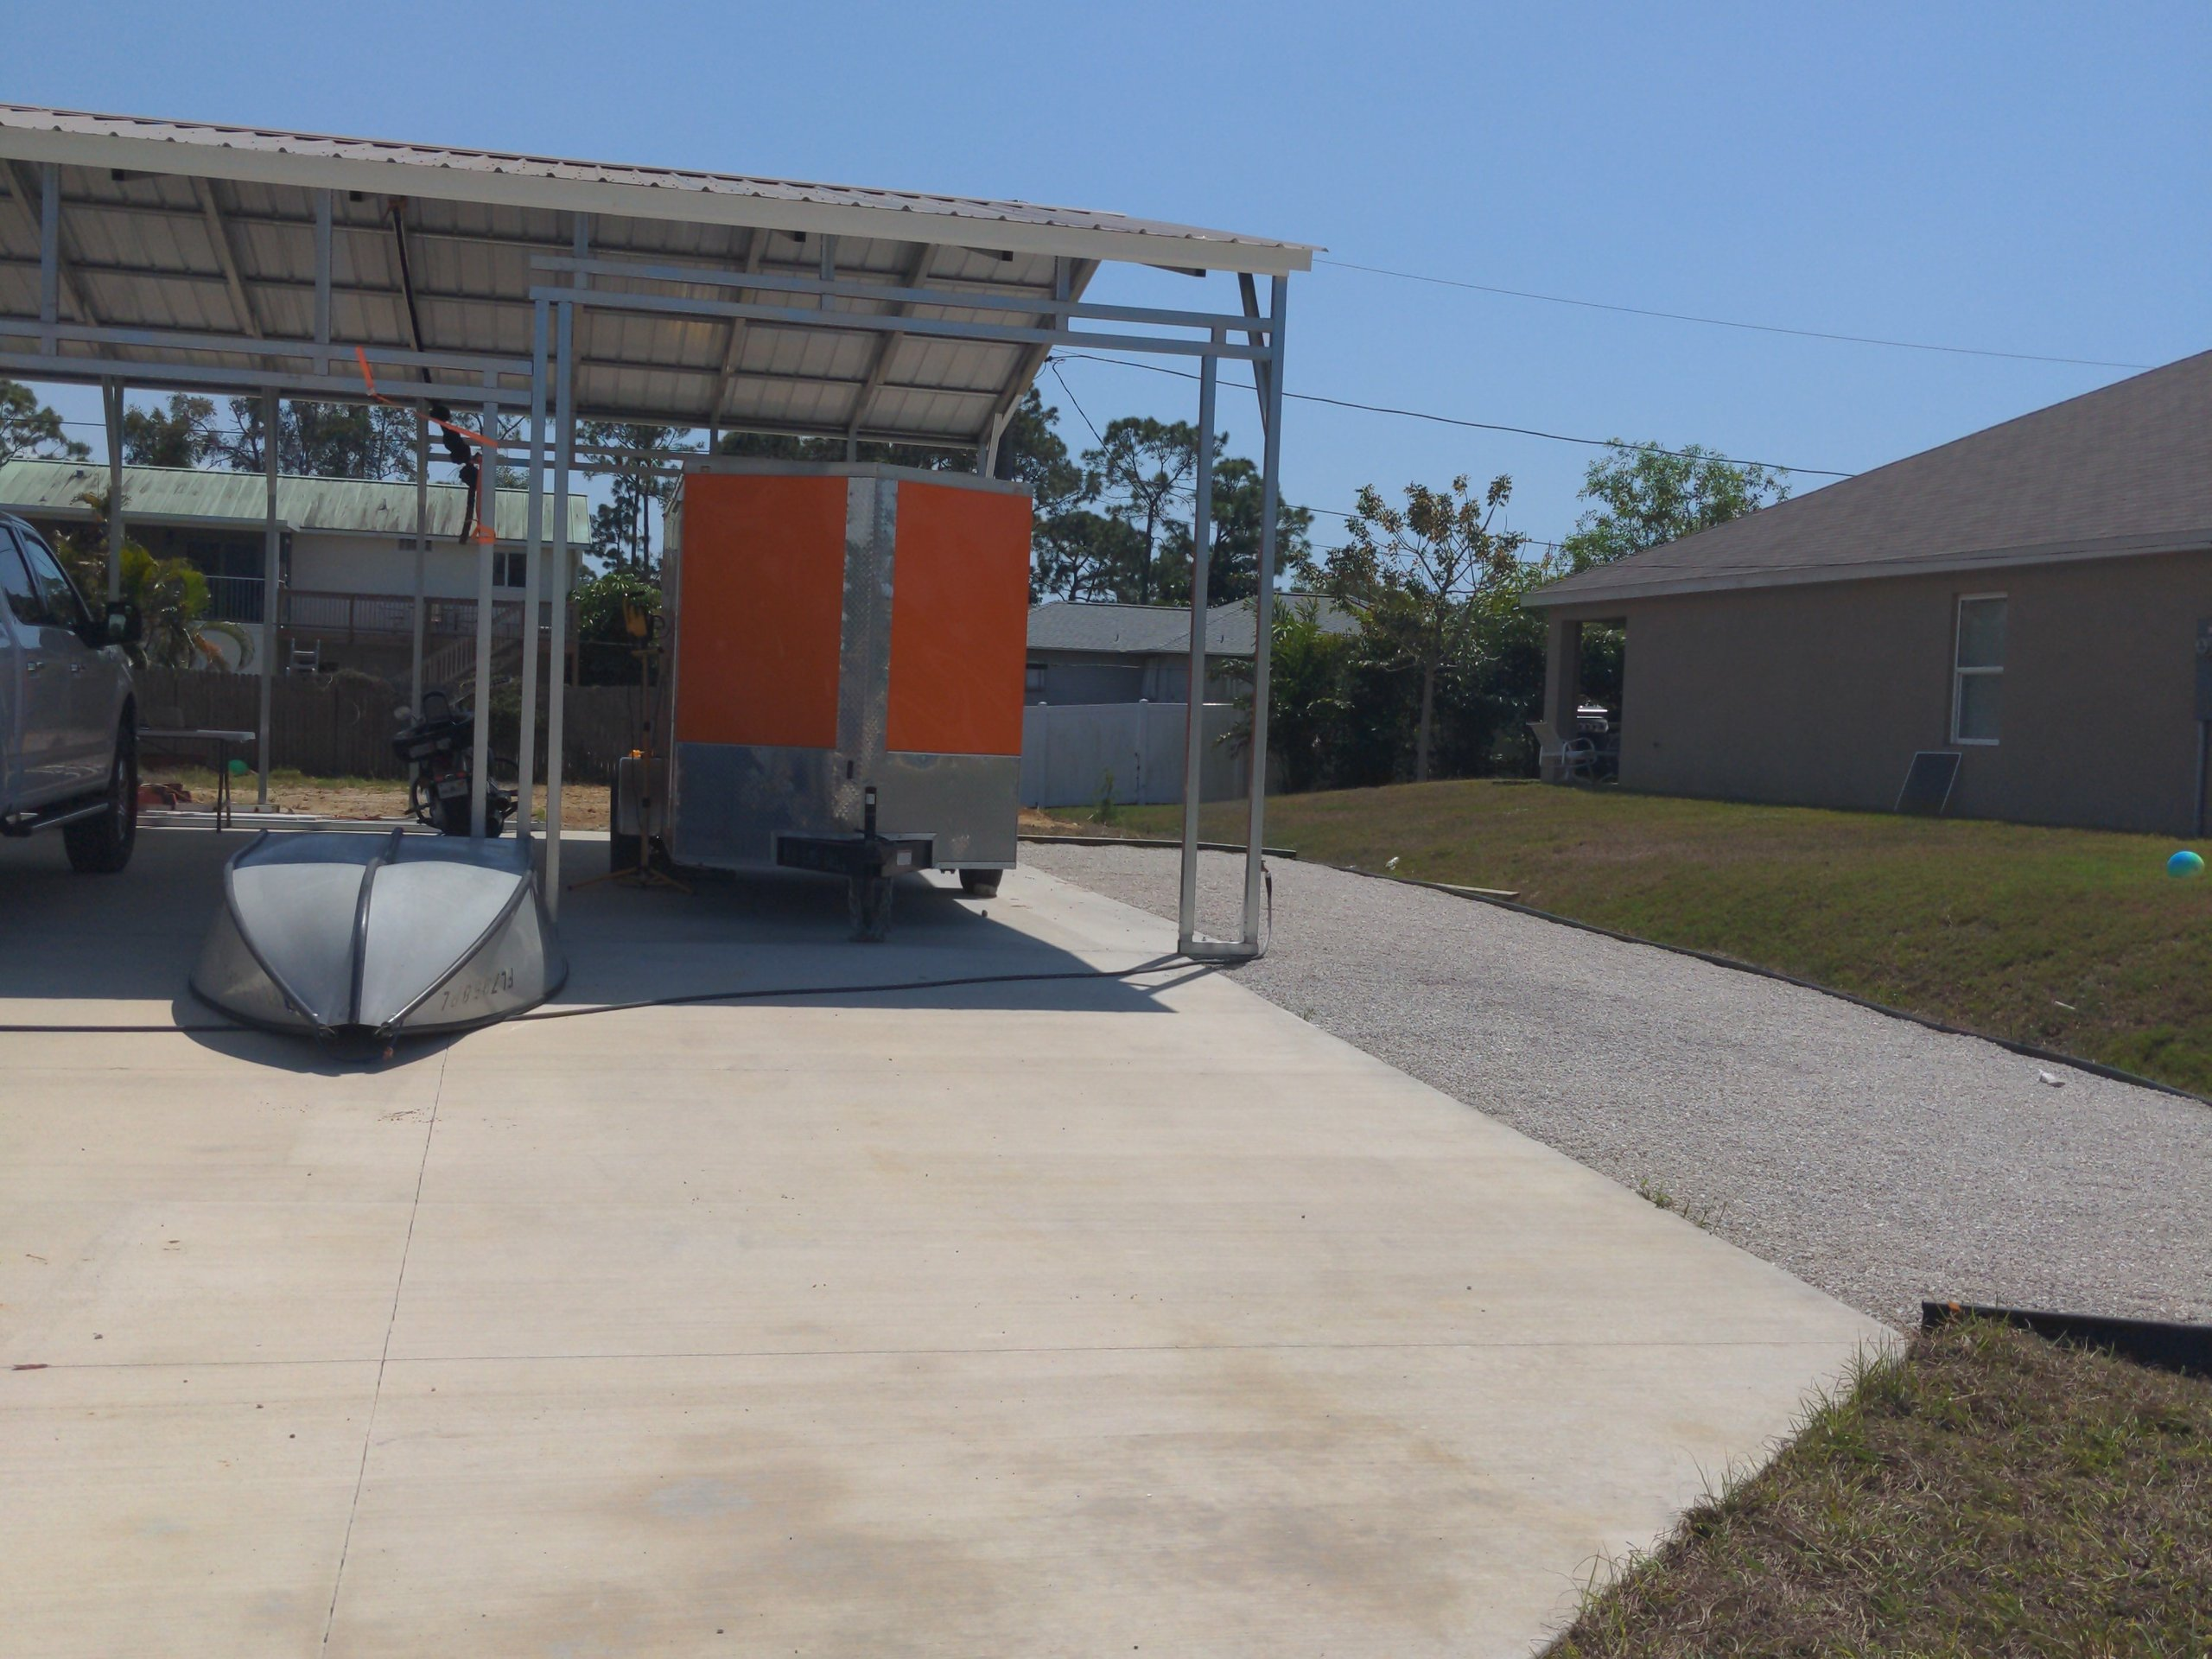 28x10 Carport self storage unit